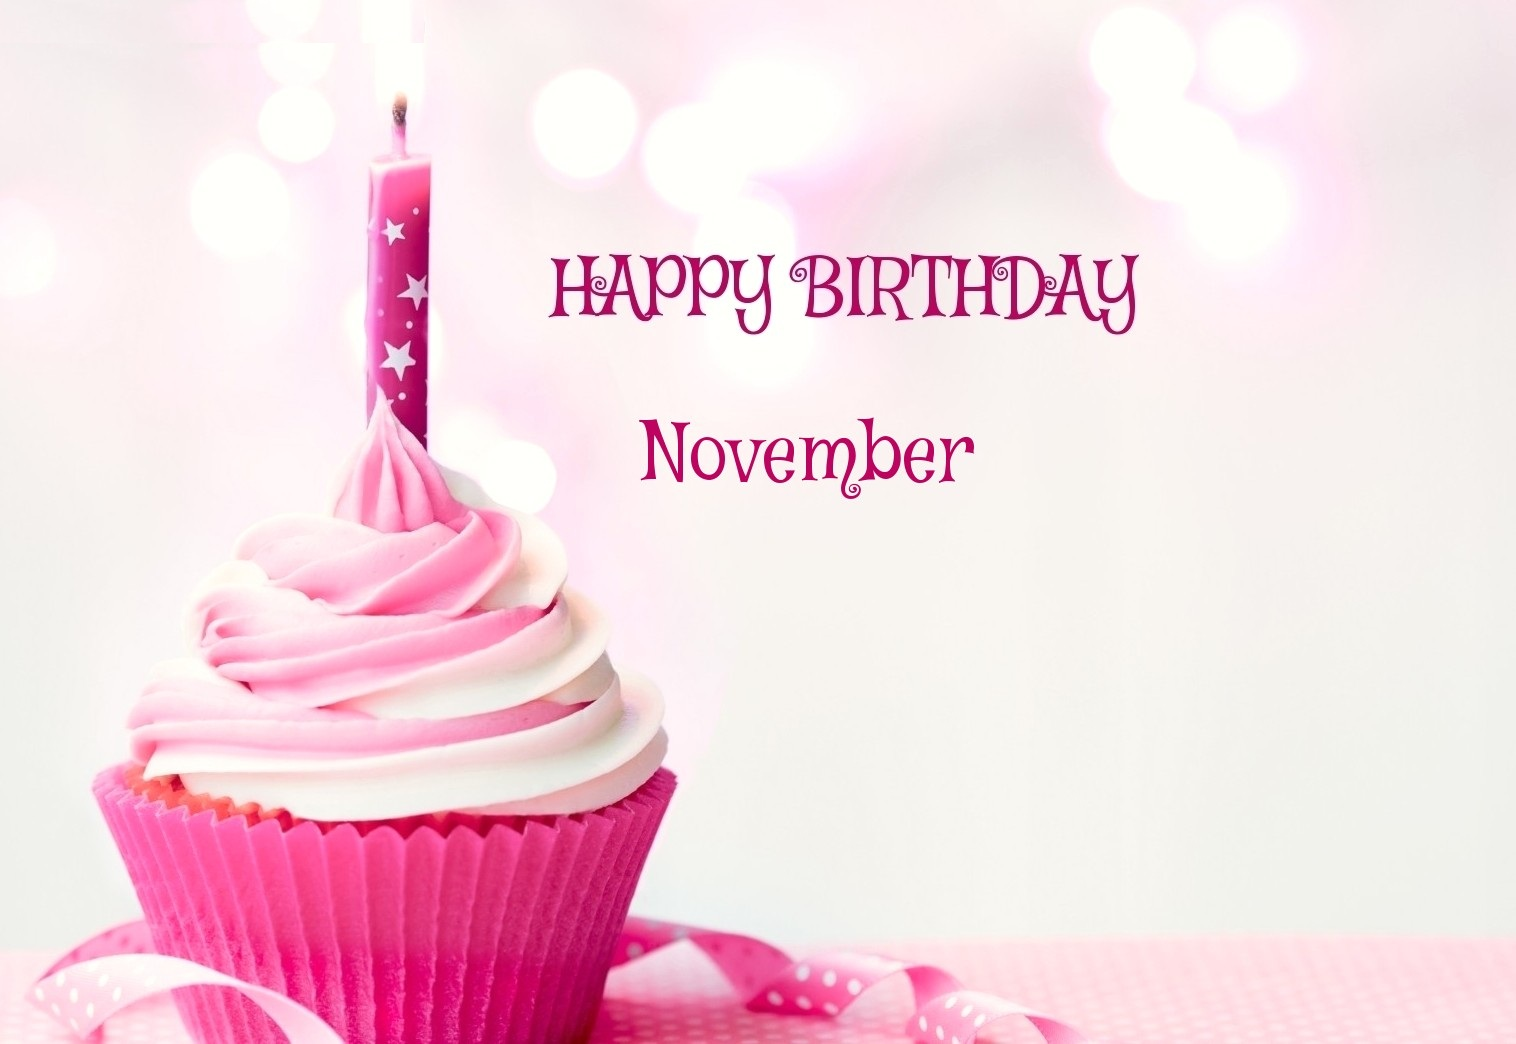 November Birthday Cake Images